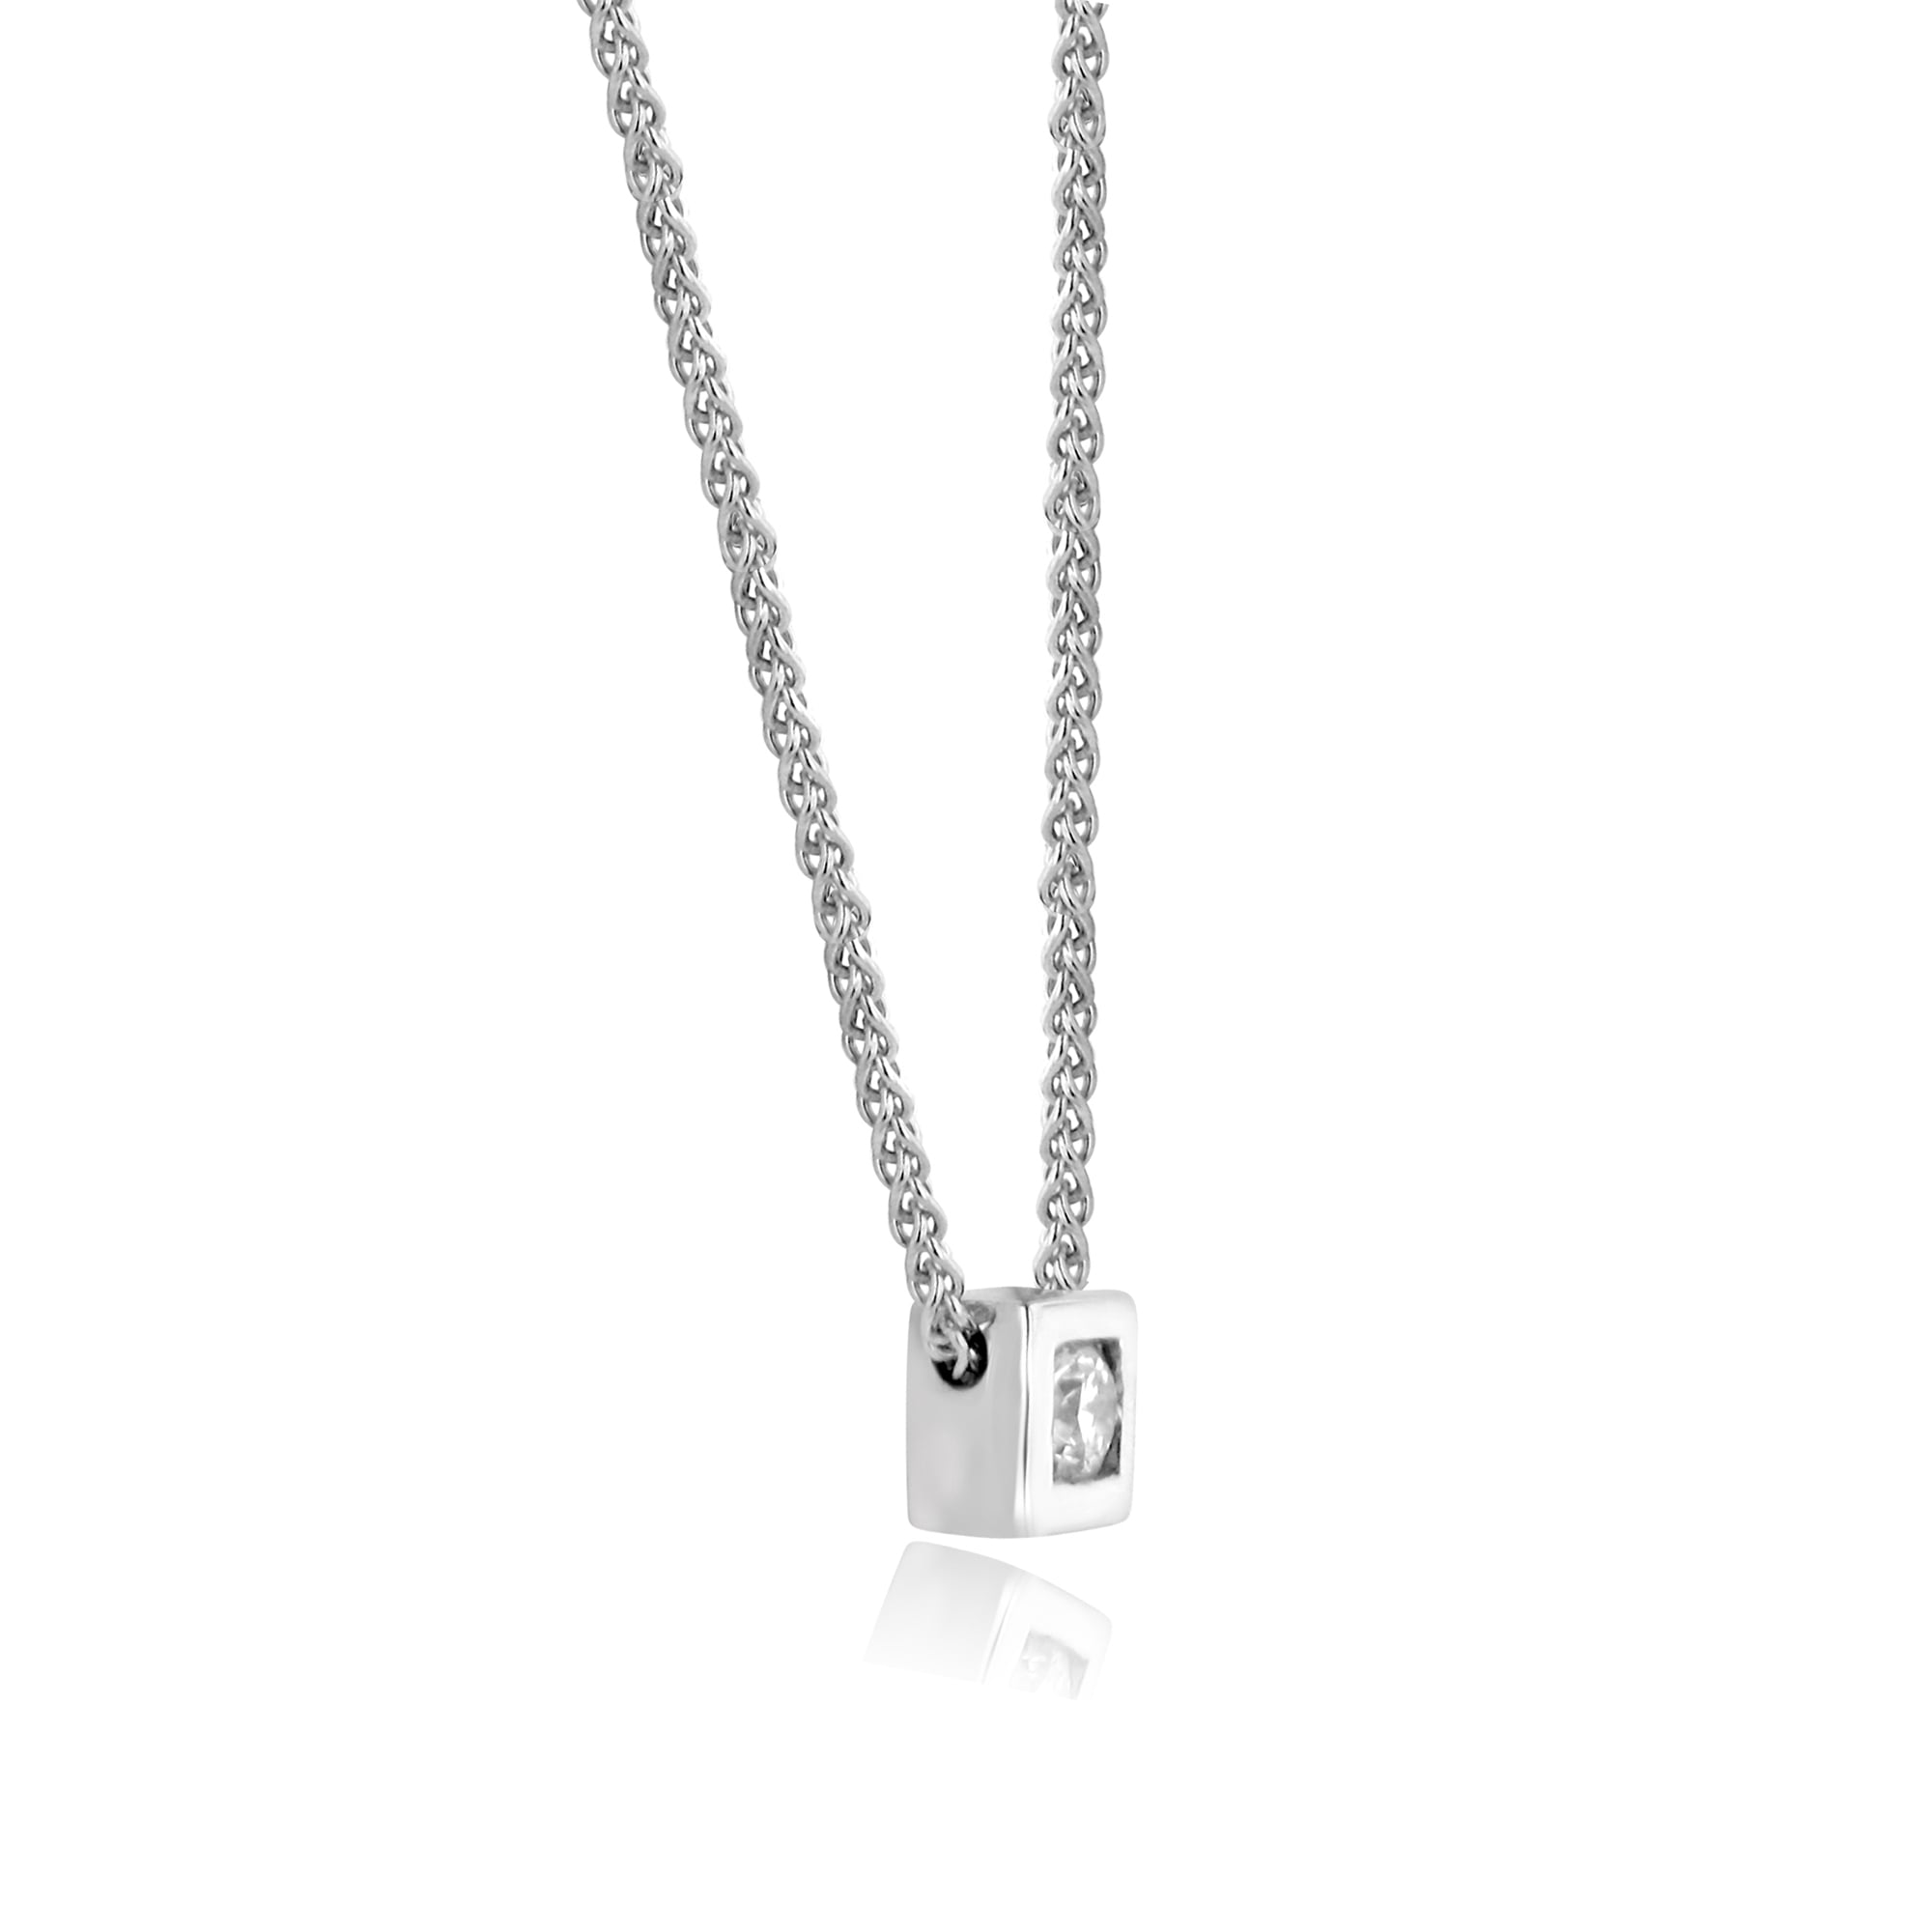 b2758e850af8d8 18ct White Gold Diamond Slider Necklace - Womens from Avanti of ...